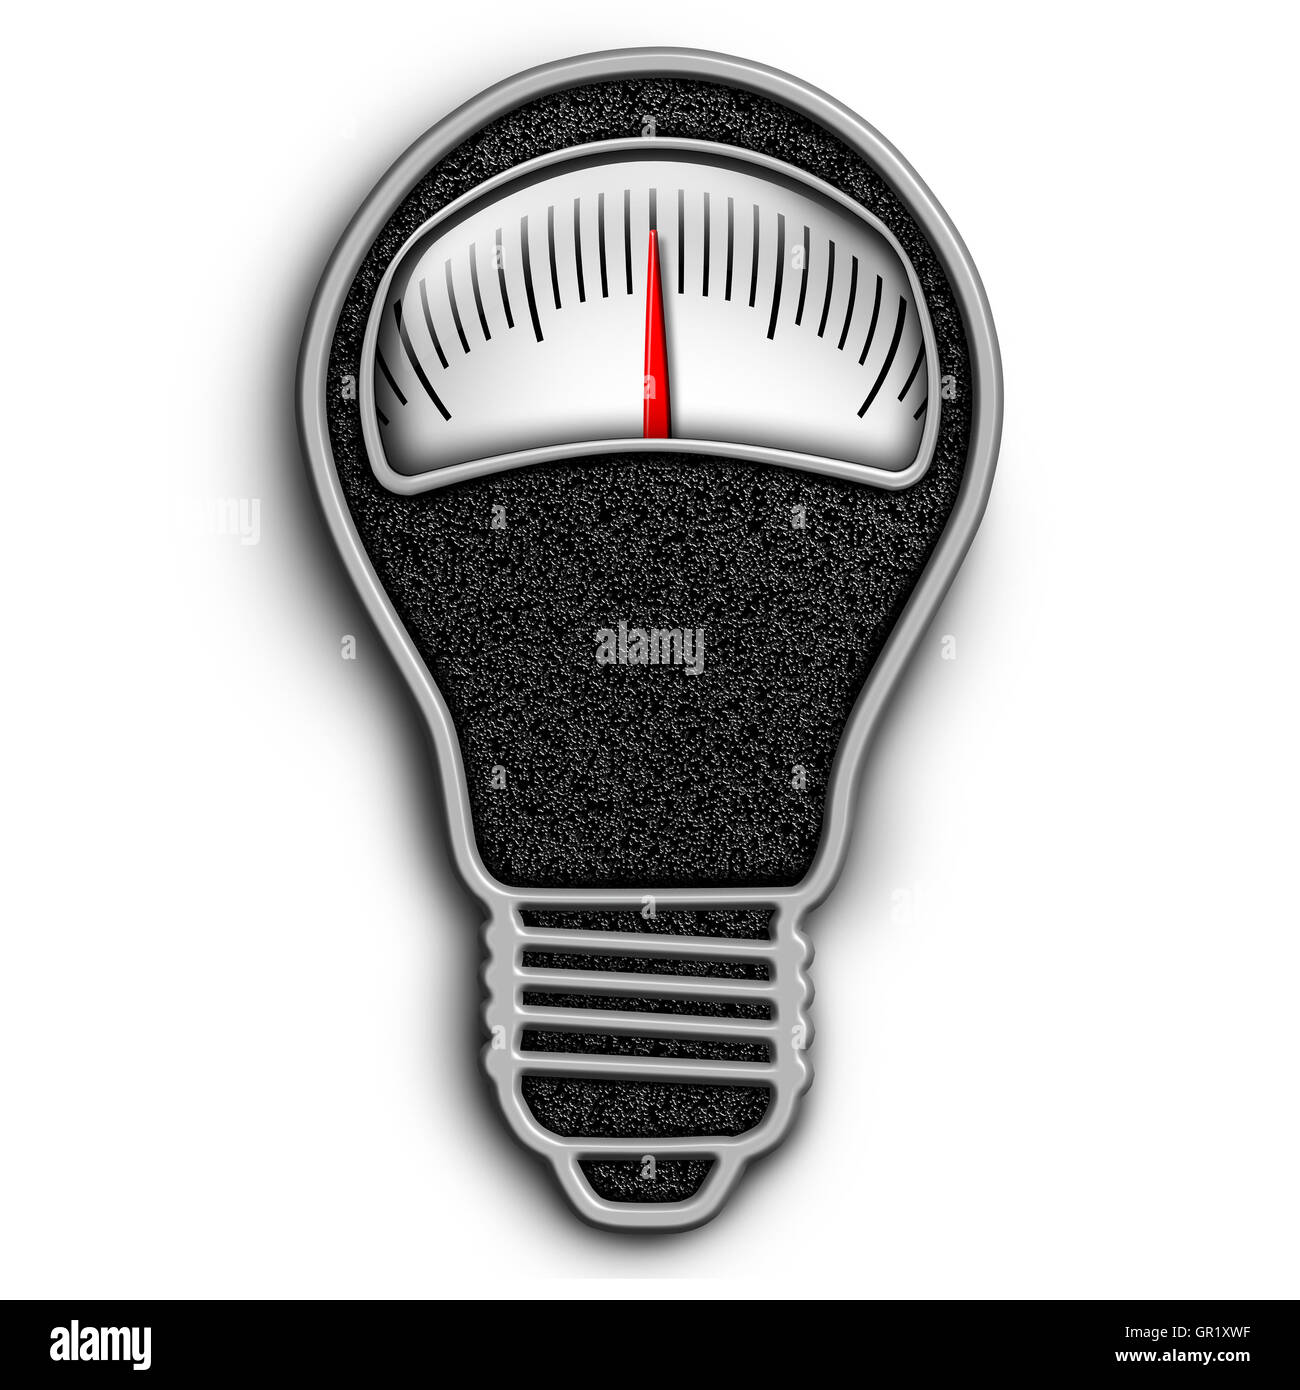 Weight loss idea and diet thinking concept and nutrition ideas symbol as a dieting scale shaped as a light bulb - Stock Image